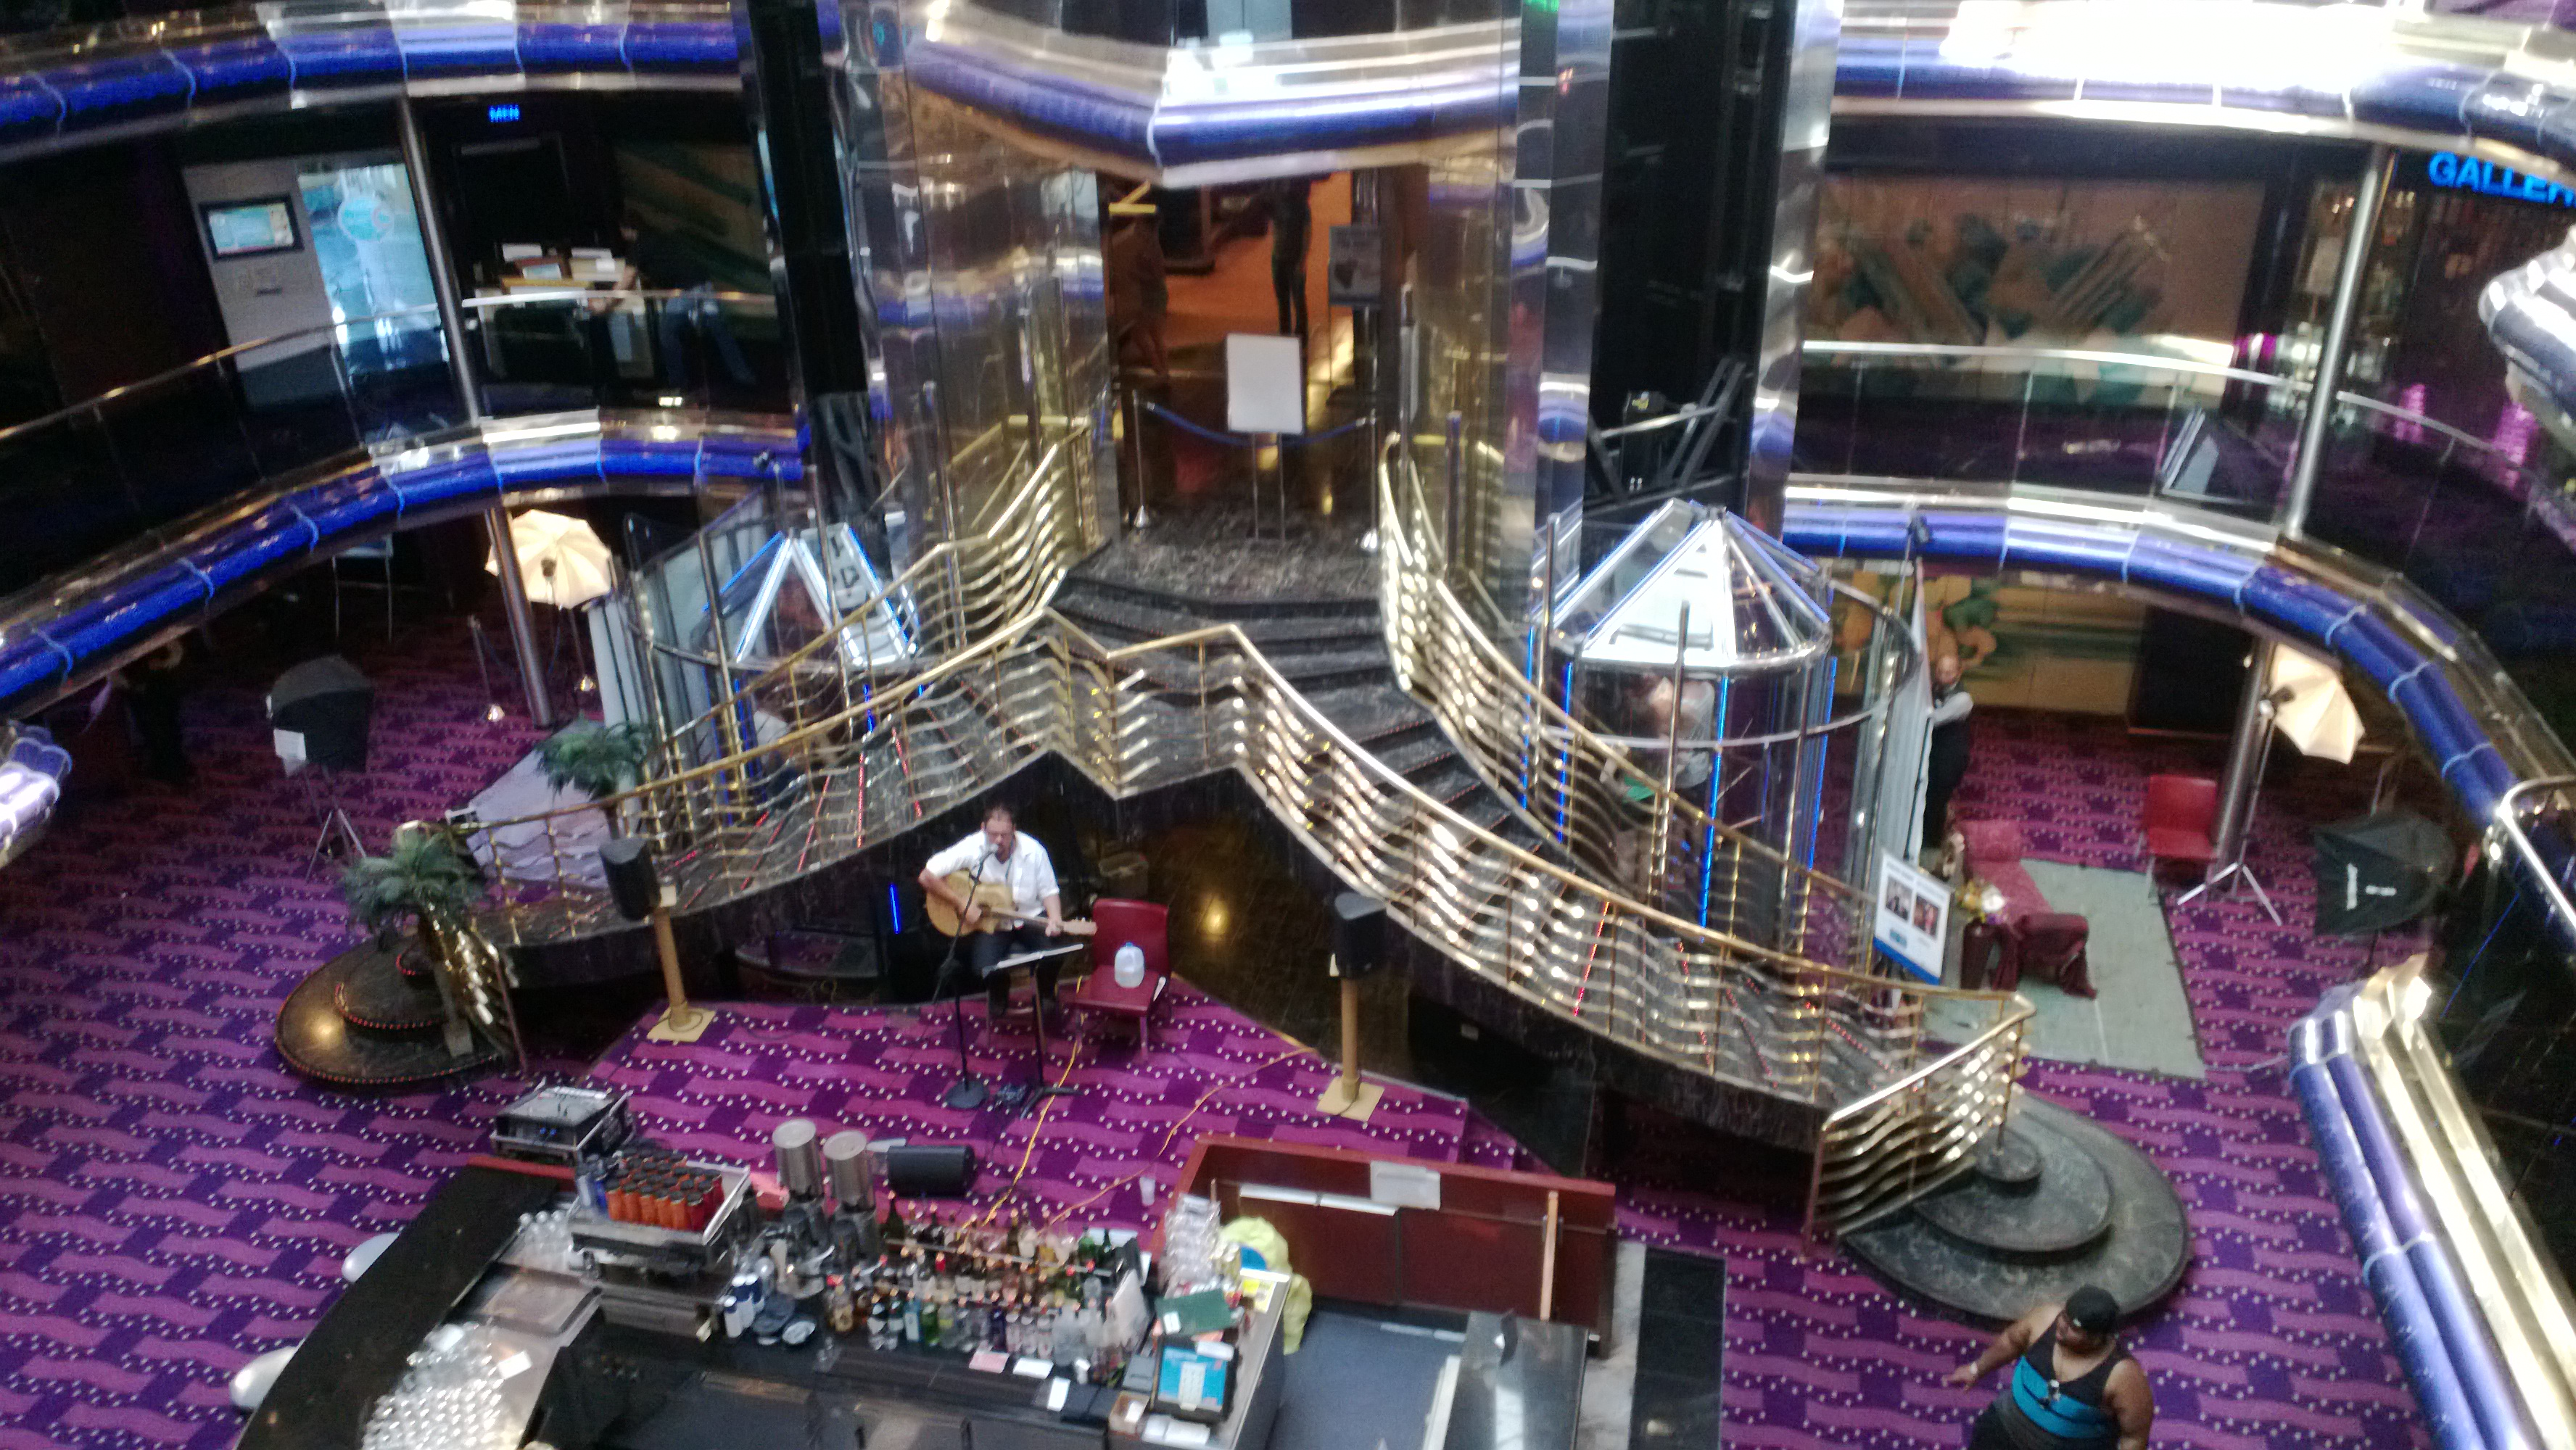 301 moved permanently - Carnival sensation interior rooms ...